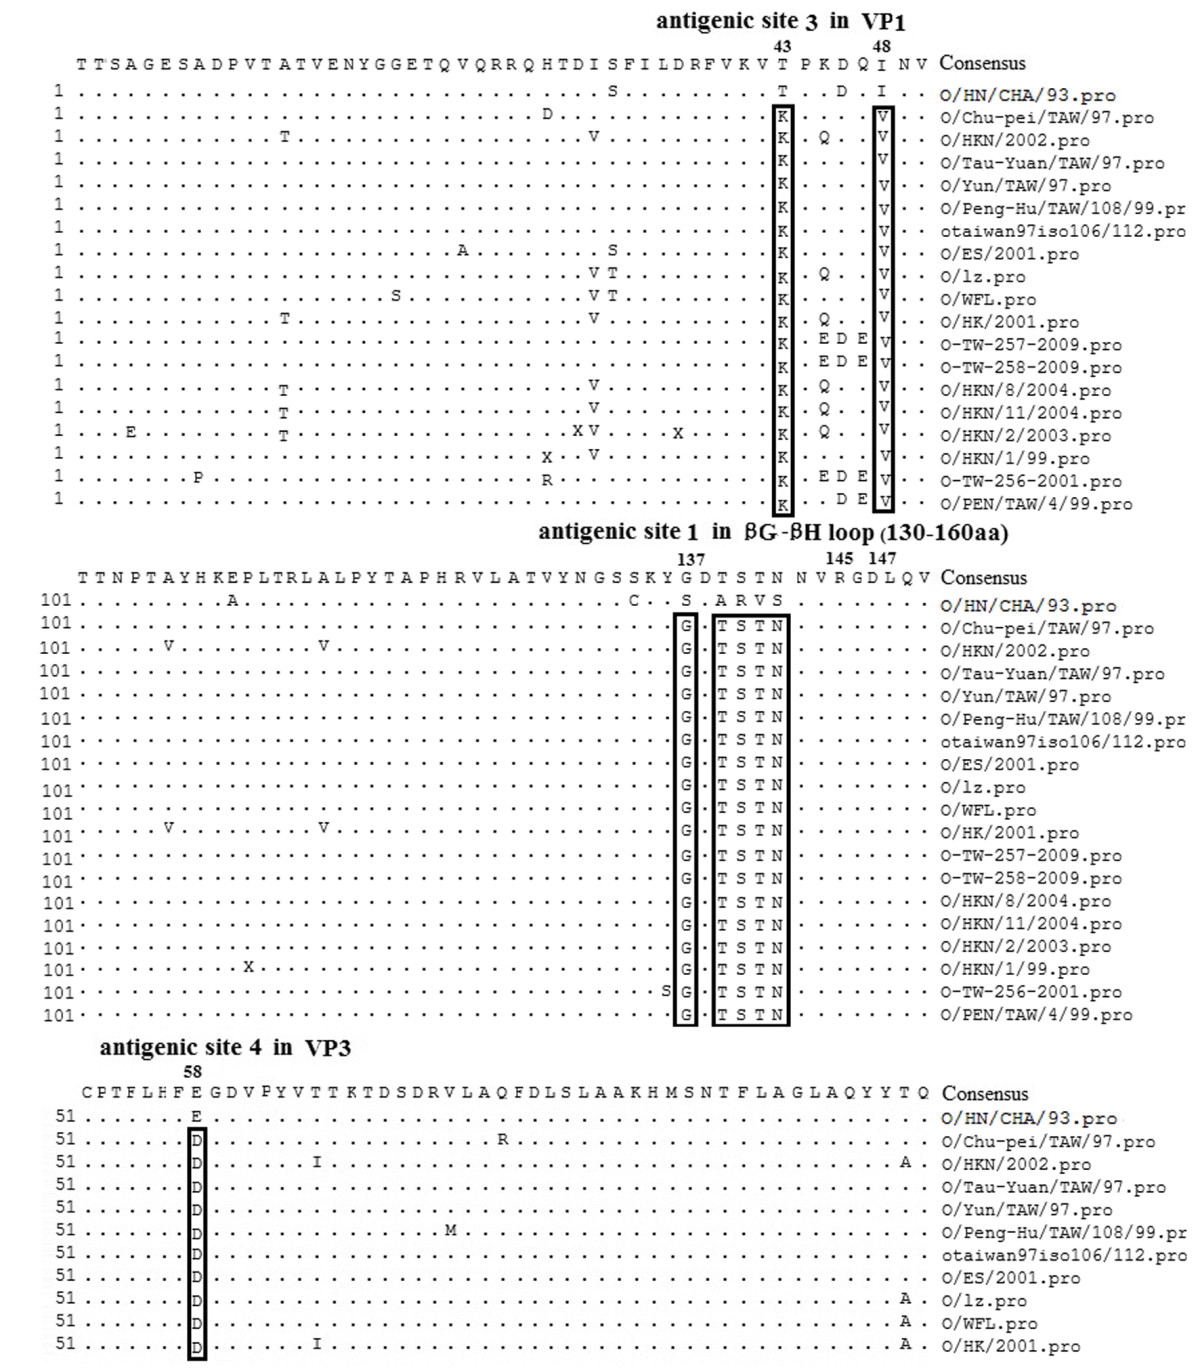 https://static-content.springer.com/image/art%3A10.1186%2F1746-6148-8-57/MediaObjects/12917_2011_Article_433_Fig1_HTML.jpg